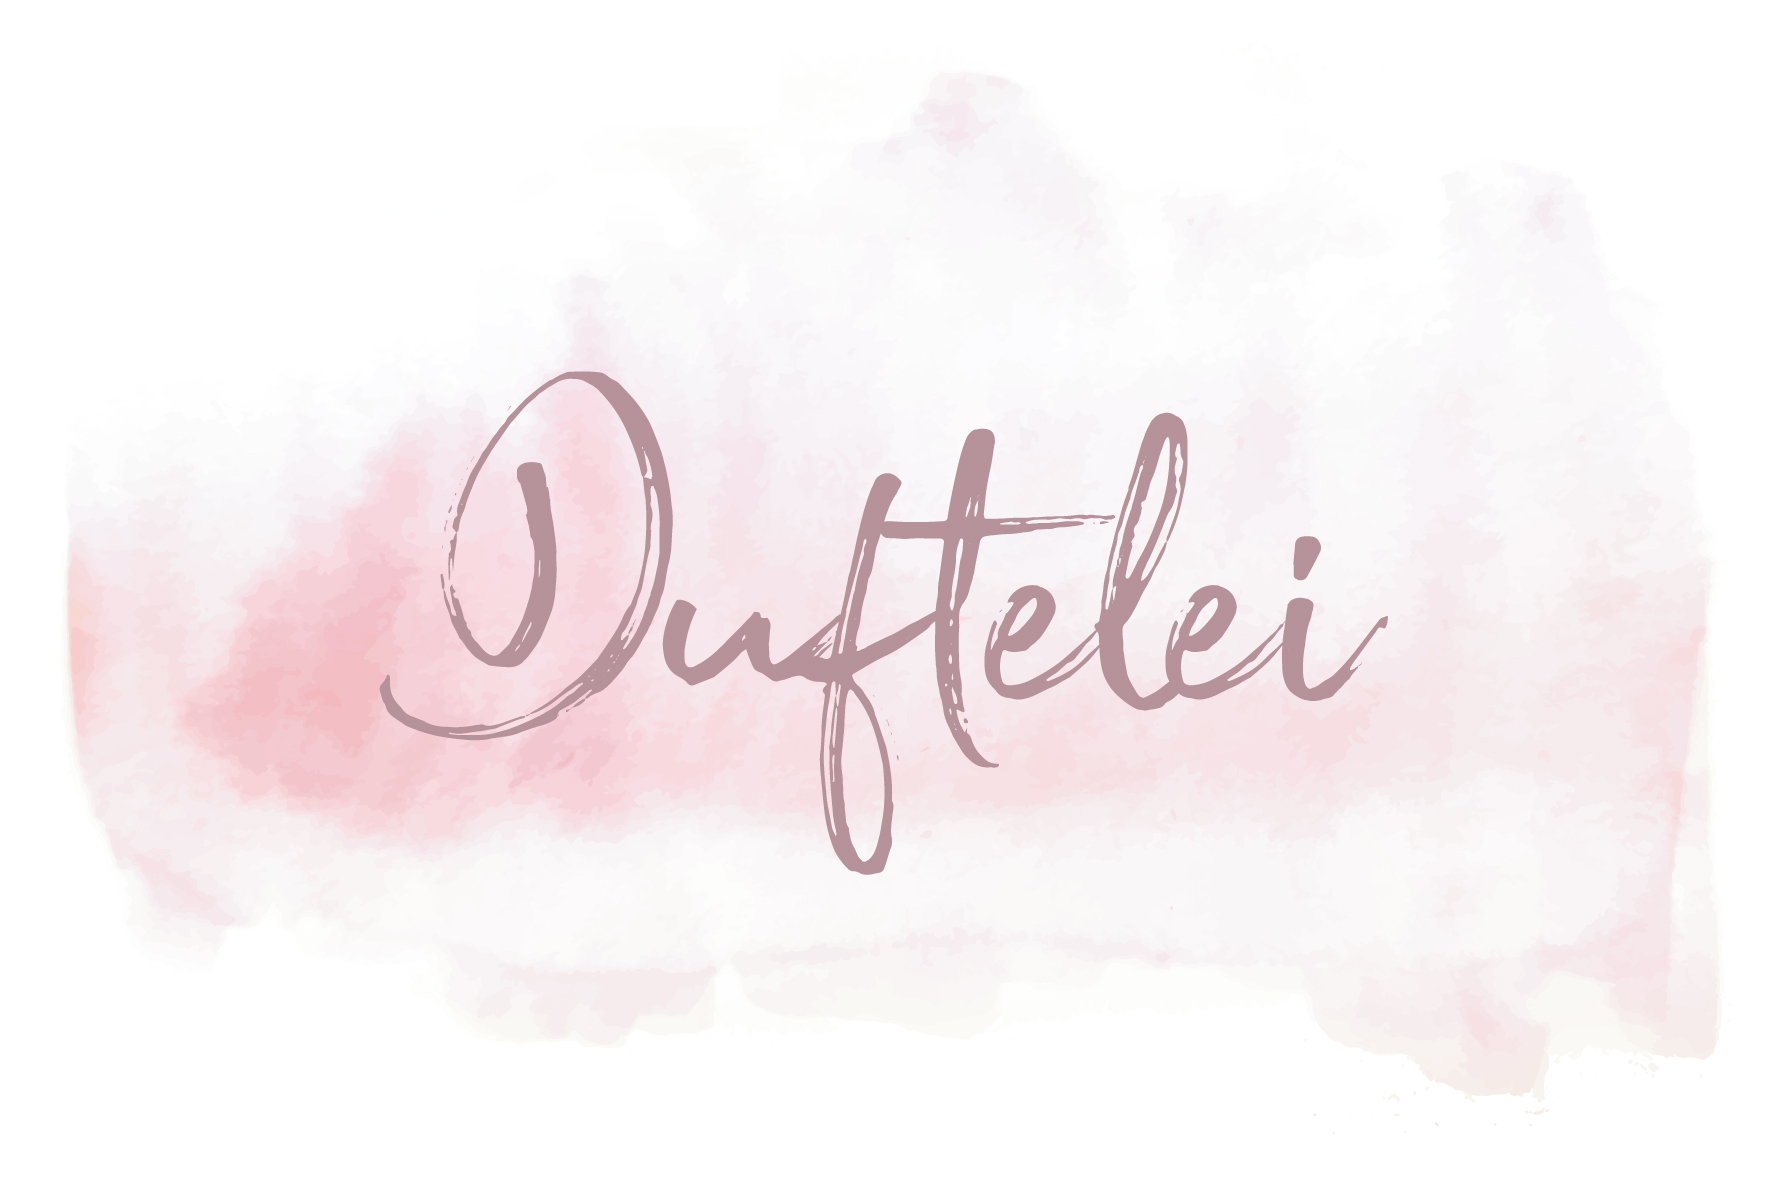 Duftelei – Karoline Winter